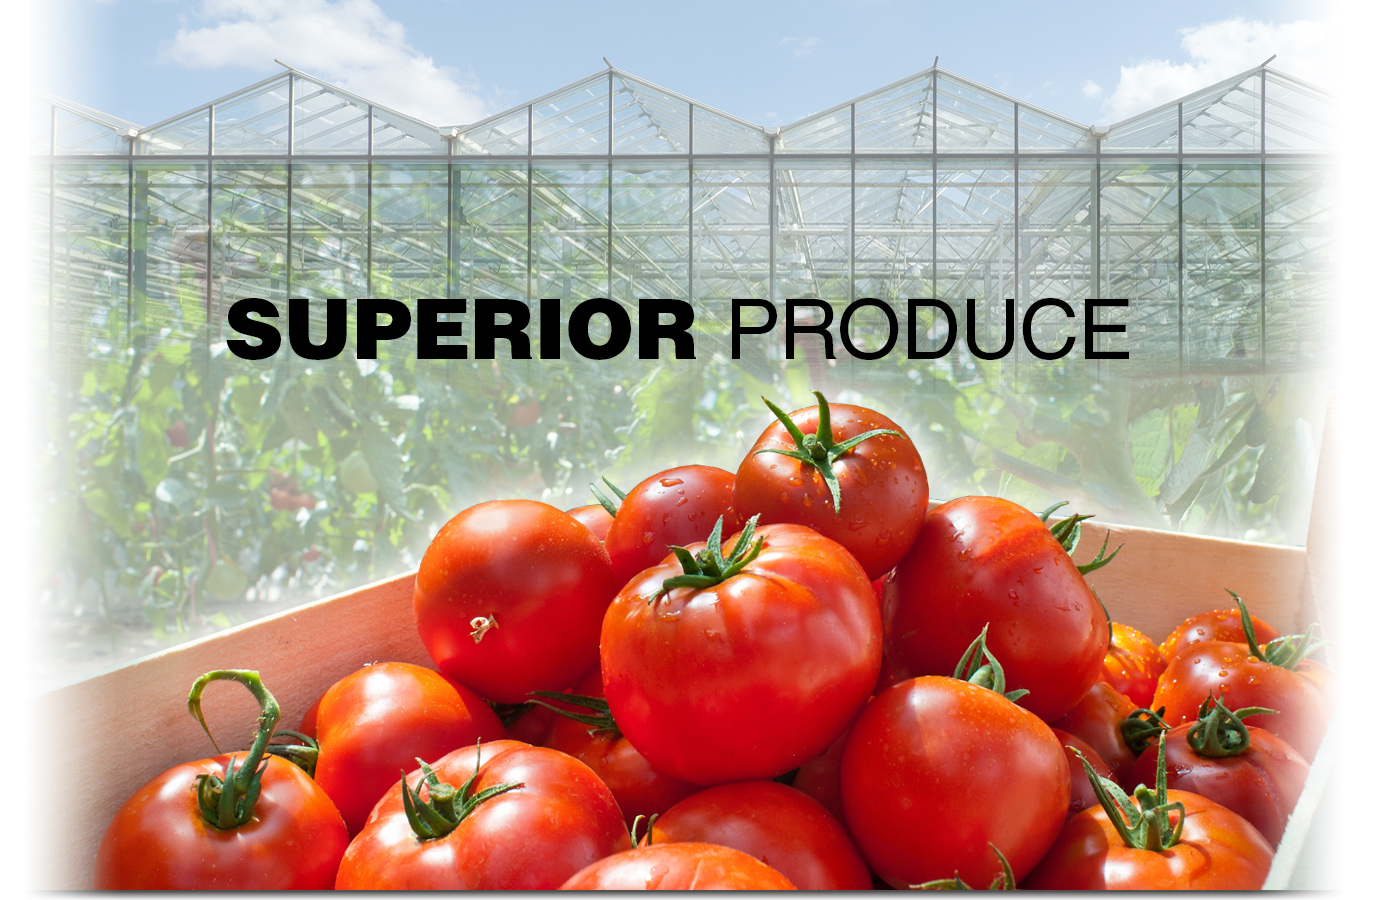 Use Grassoline Organic fish fertilizer for Superior Produce